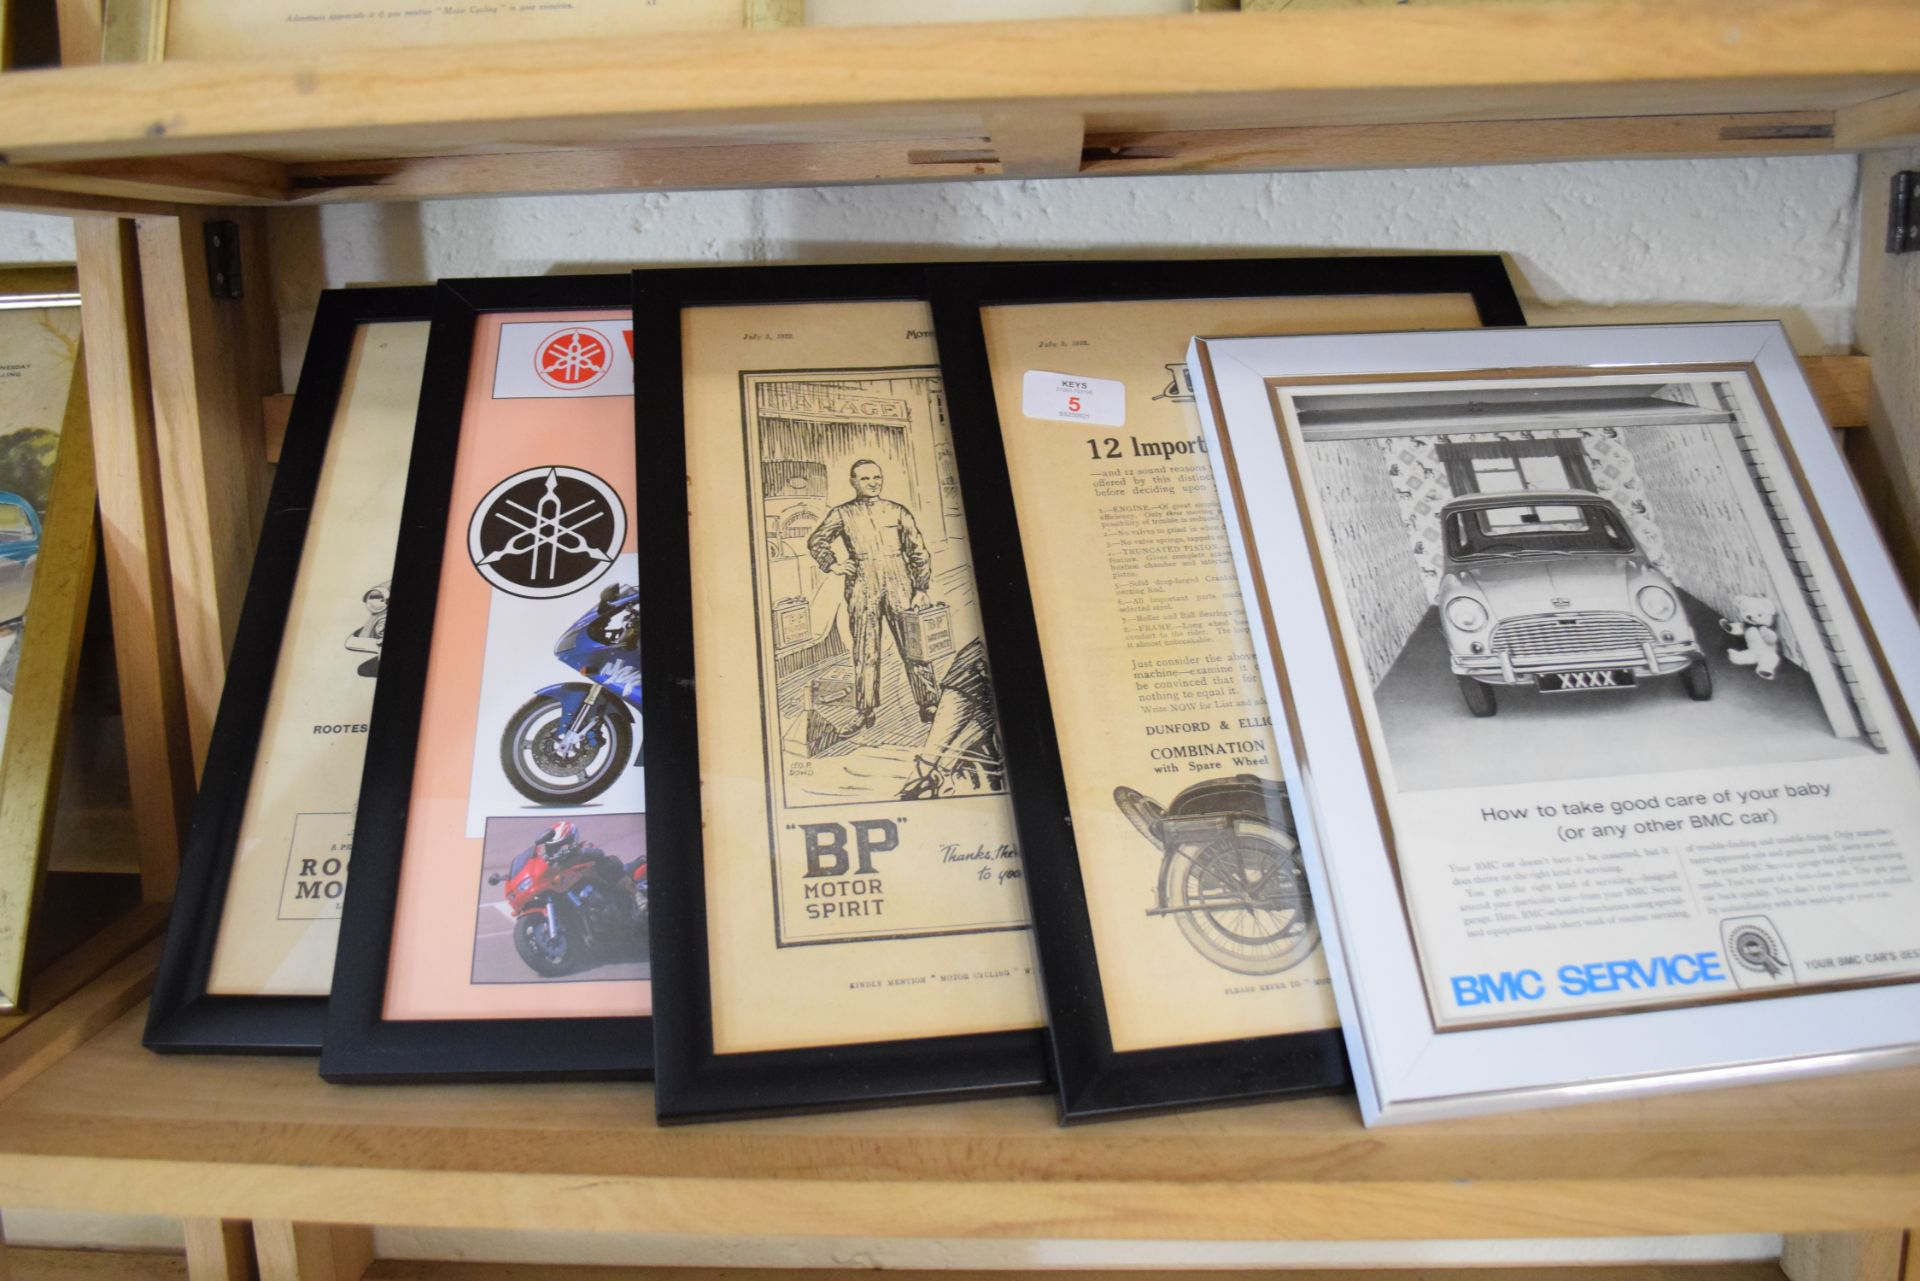 Quantity of framed advertising prints taken from a magazine for Yamaha motorbikes, BMC Service etc - Image 2 of 7